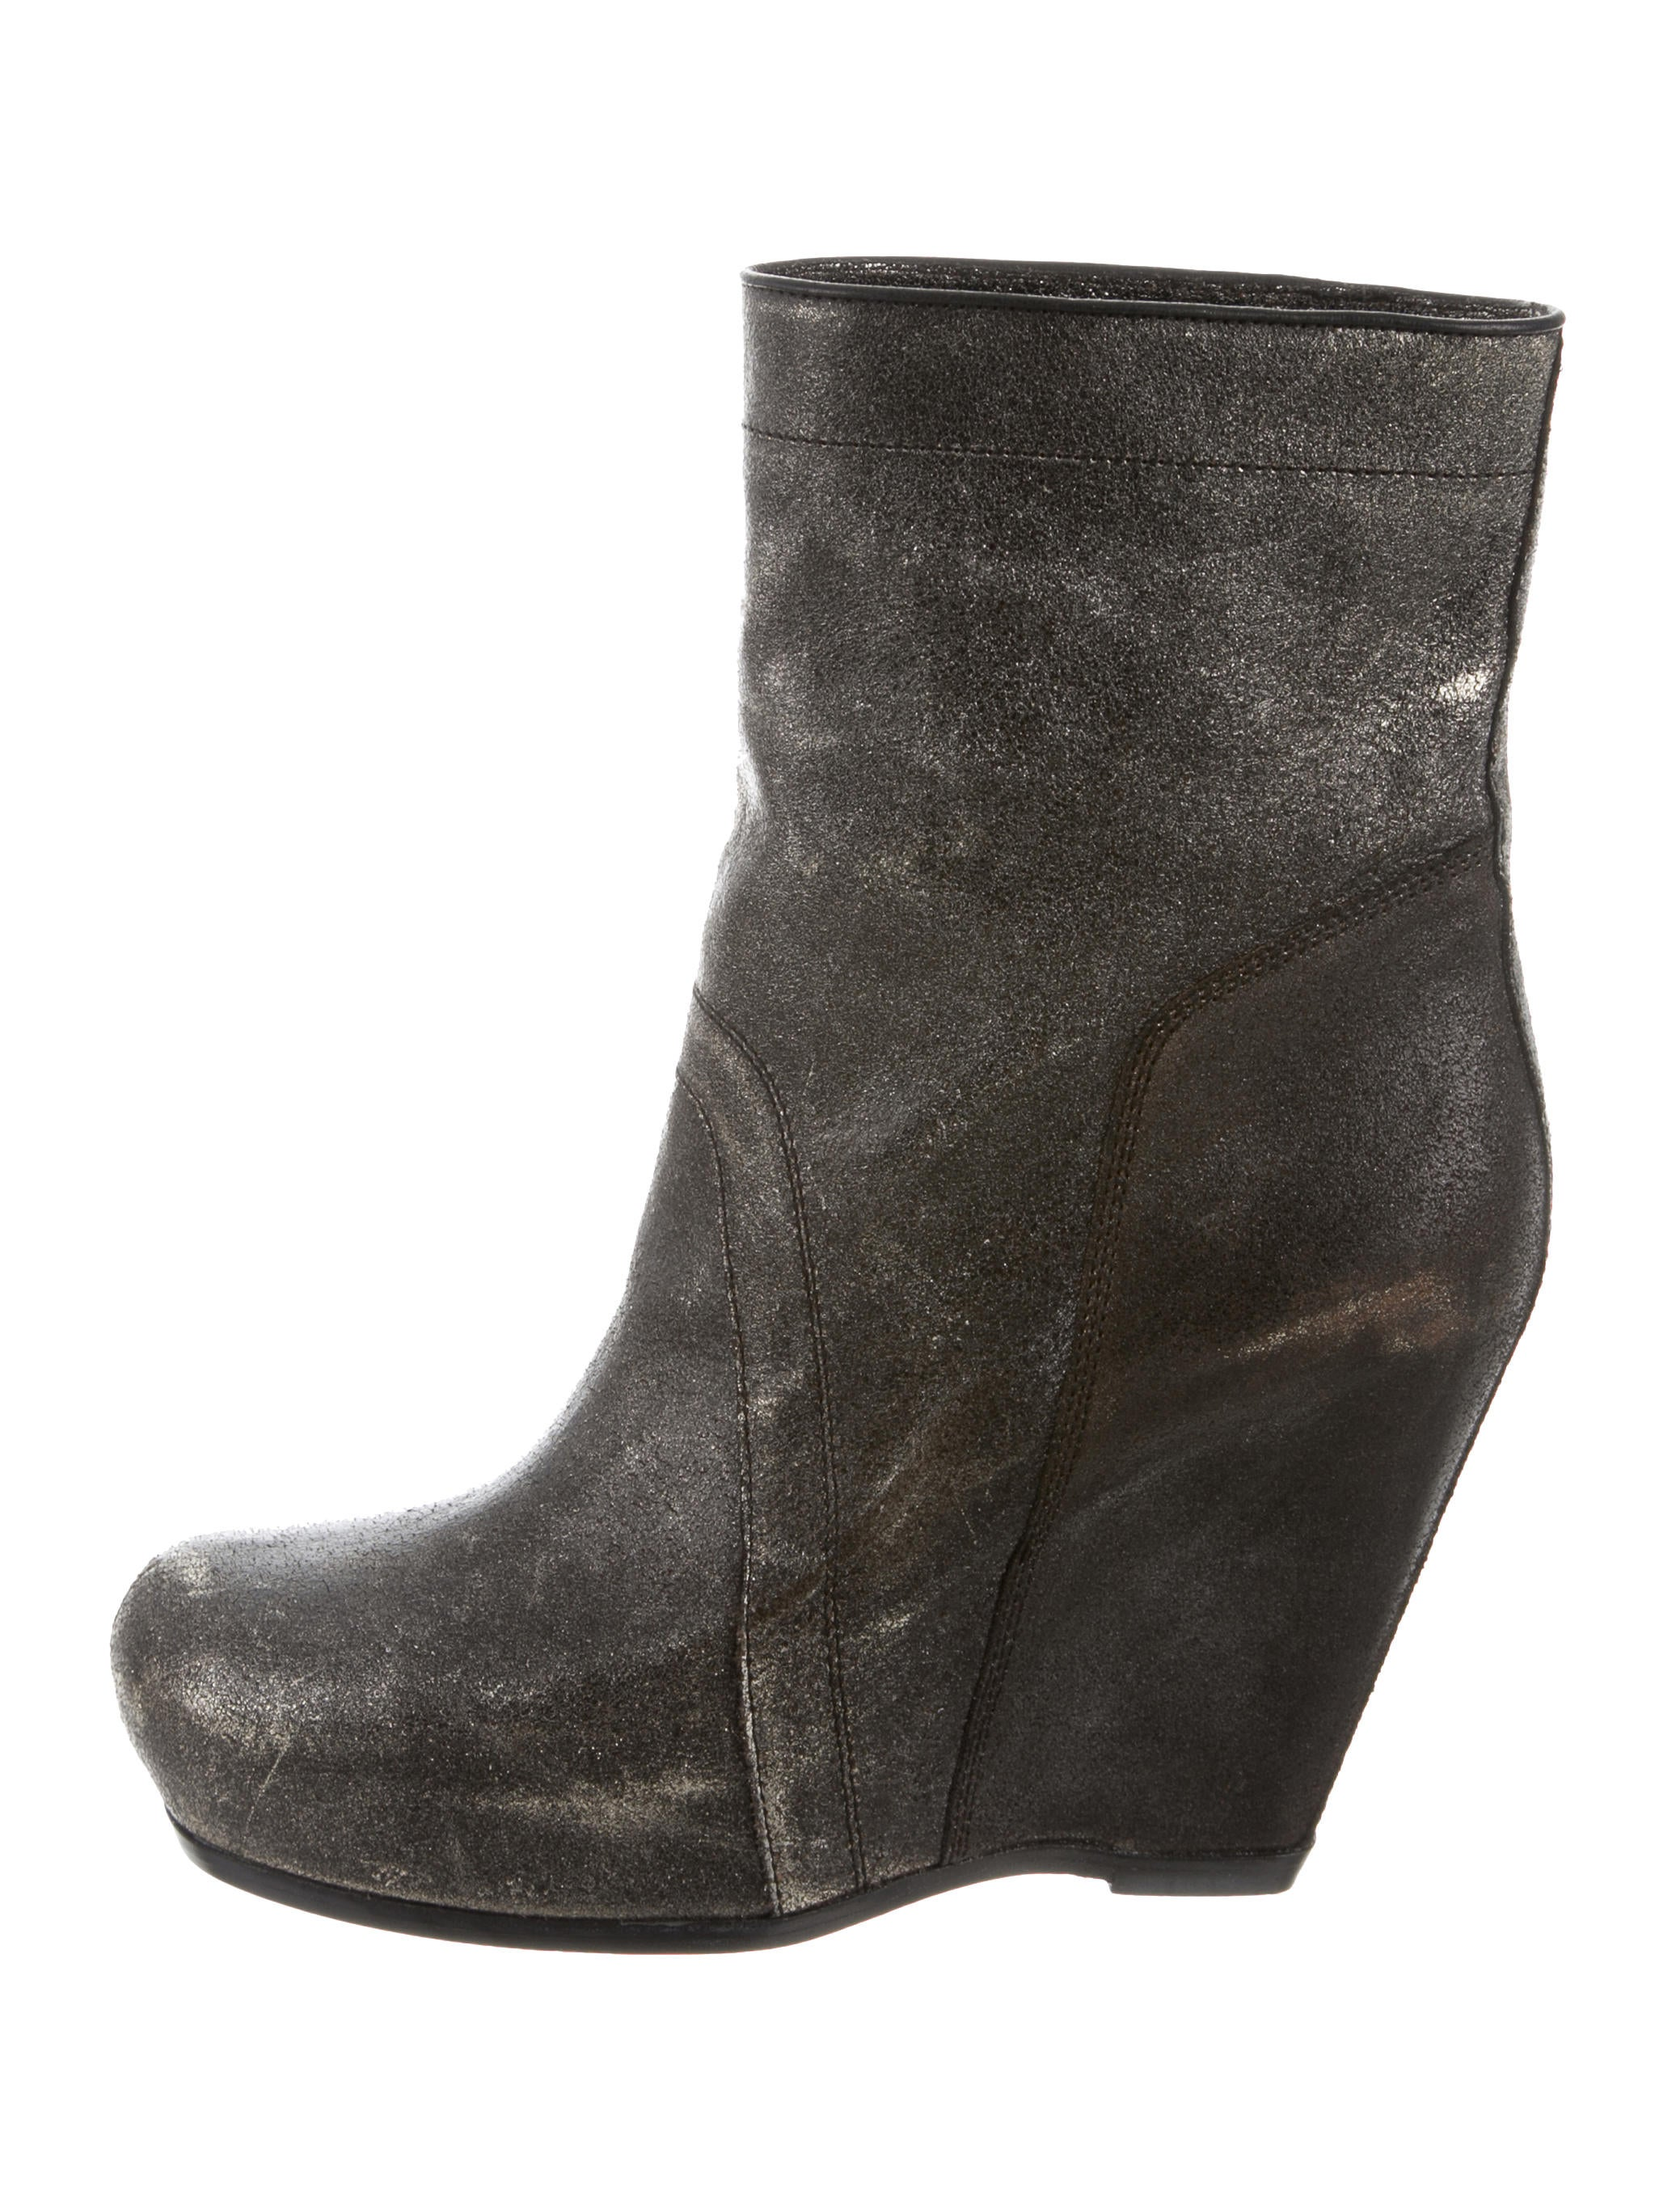 cheap sneakernews Rick Owens Distressed Wedge Boots w/ Tags 100% guaranteed online S4fVolHDOX